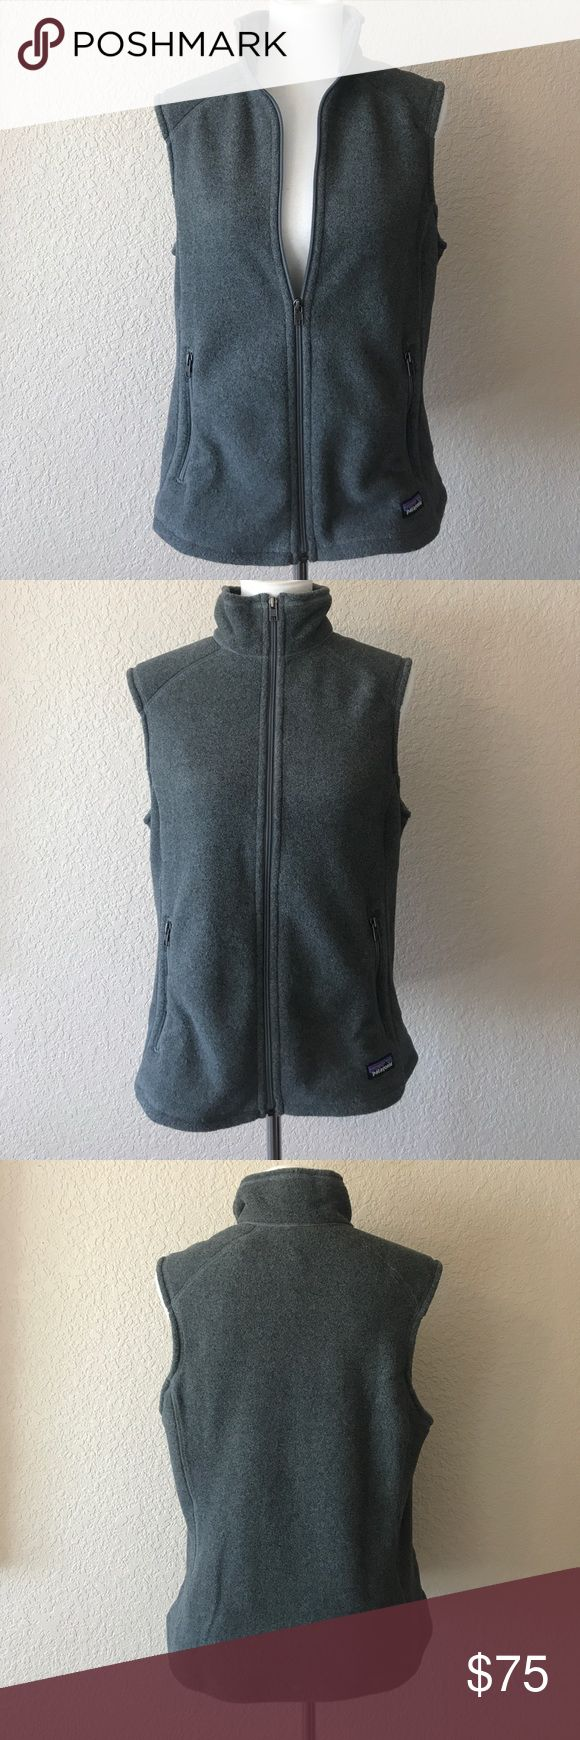 """Patagonia Synchilla Vest Patagonia women's Synchilla Vest. NWT. Non smoking home. Shoulder to hem 25"""". Pit to pit is 20"""". Patagonia Jackets & Coats Vests"""